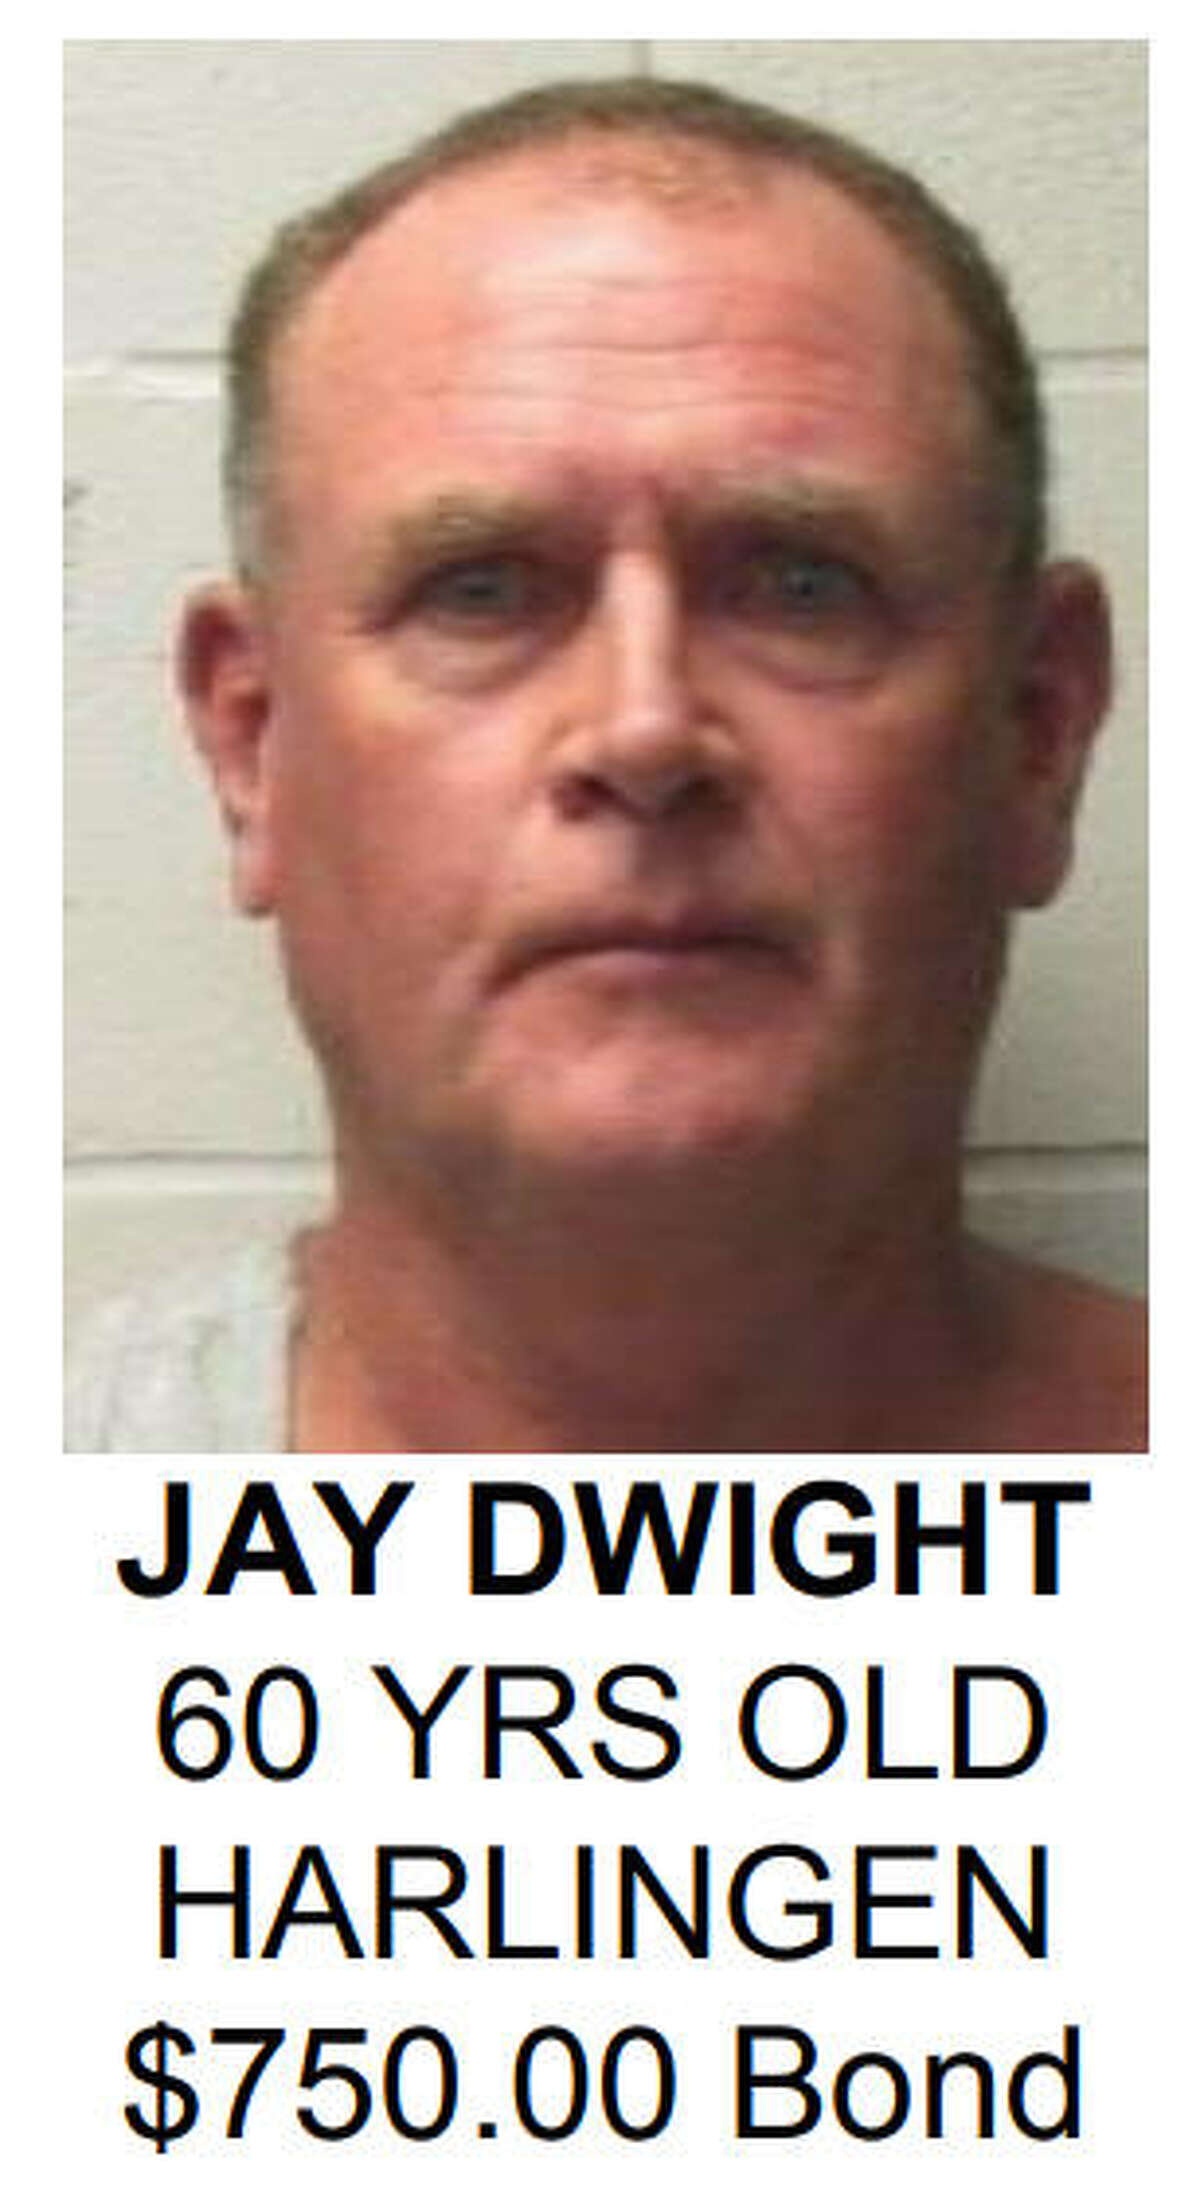 Jay Dwight was one of 167 people arrested by Harlingen (Texas) Police in a large scale sex trade sting July 21-22, 2017.